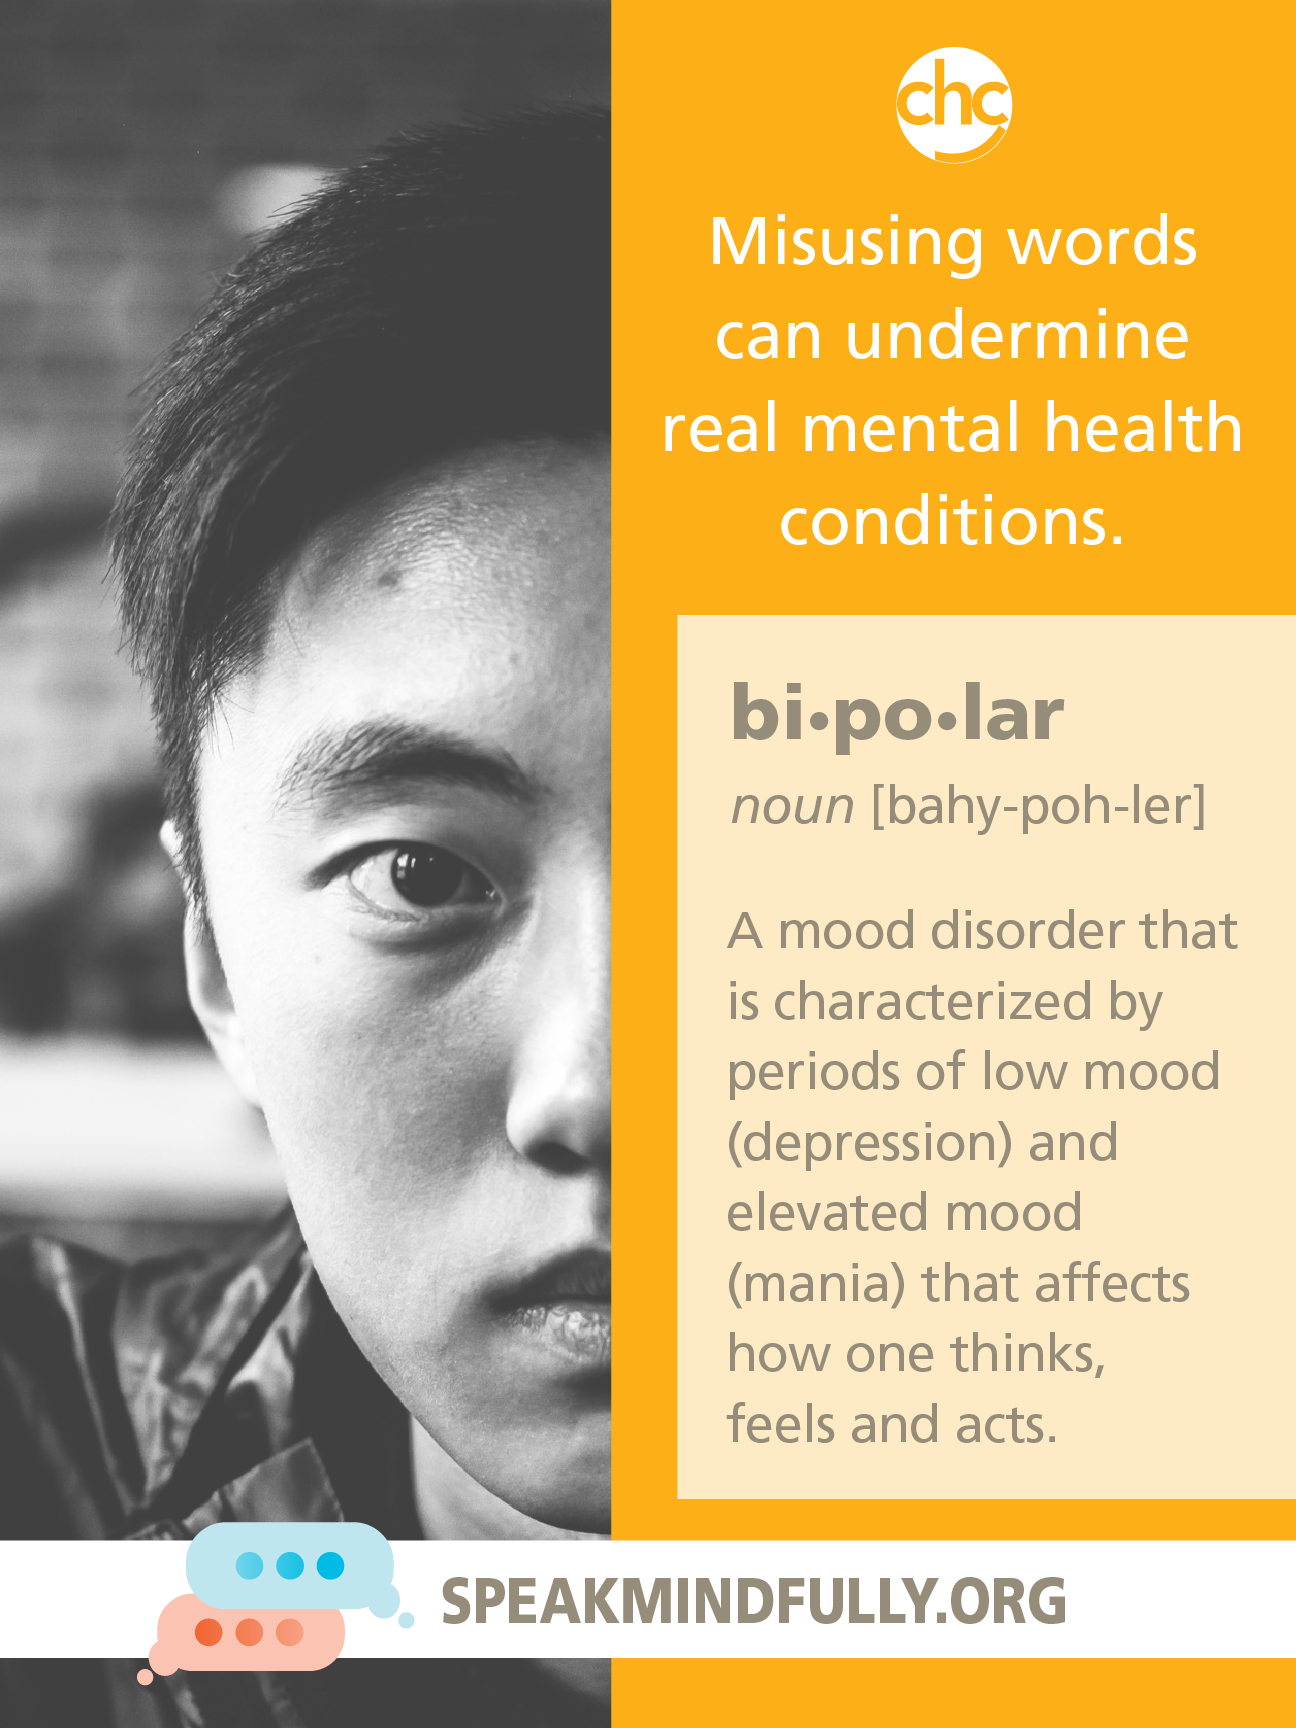 Speak Mindfully poster about bi-polar